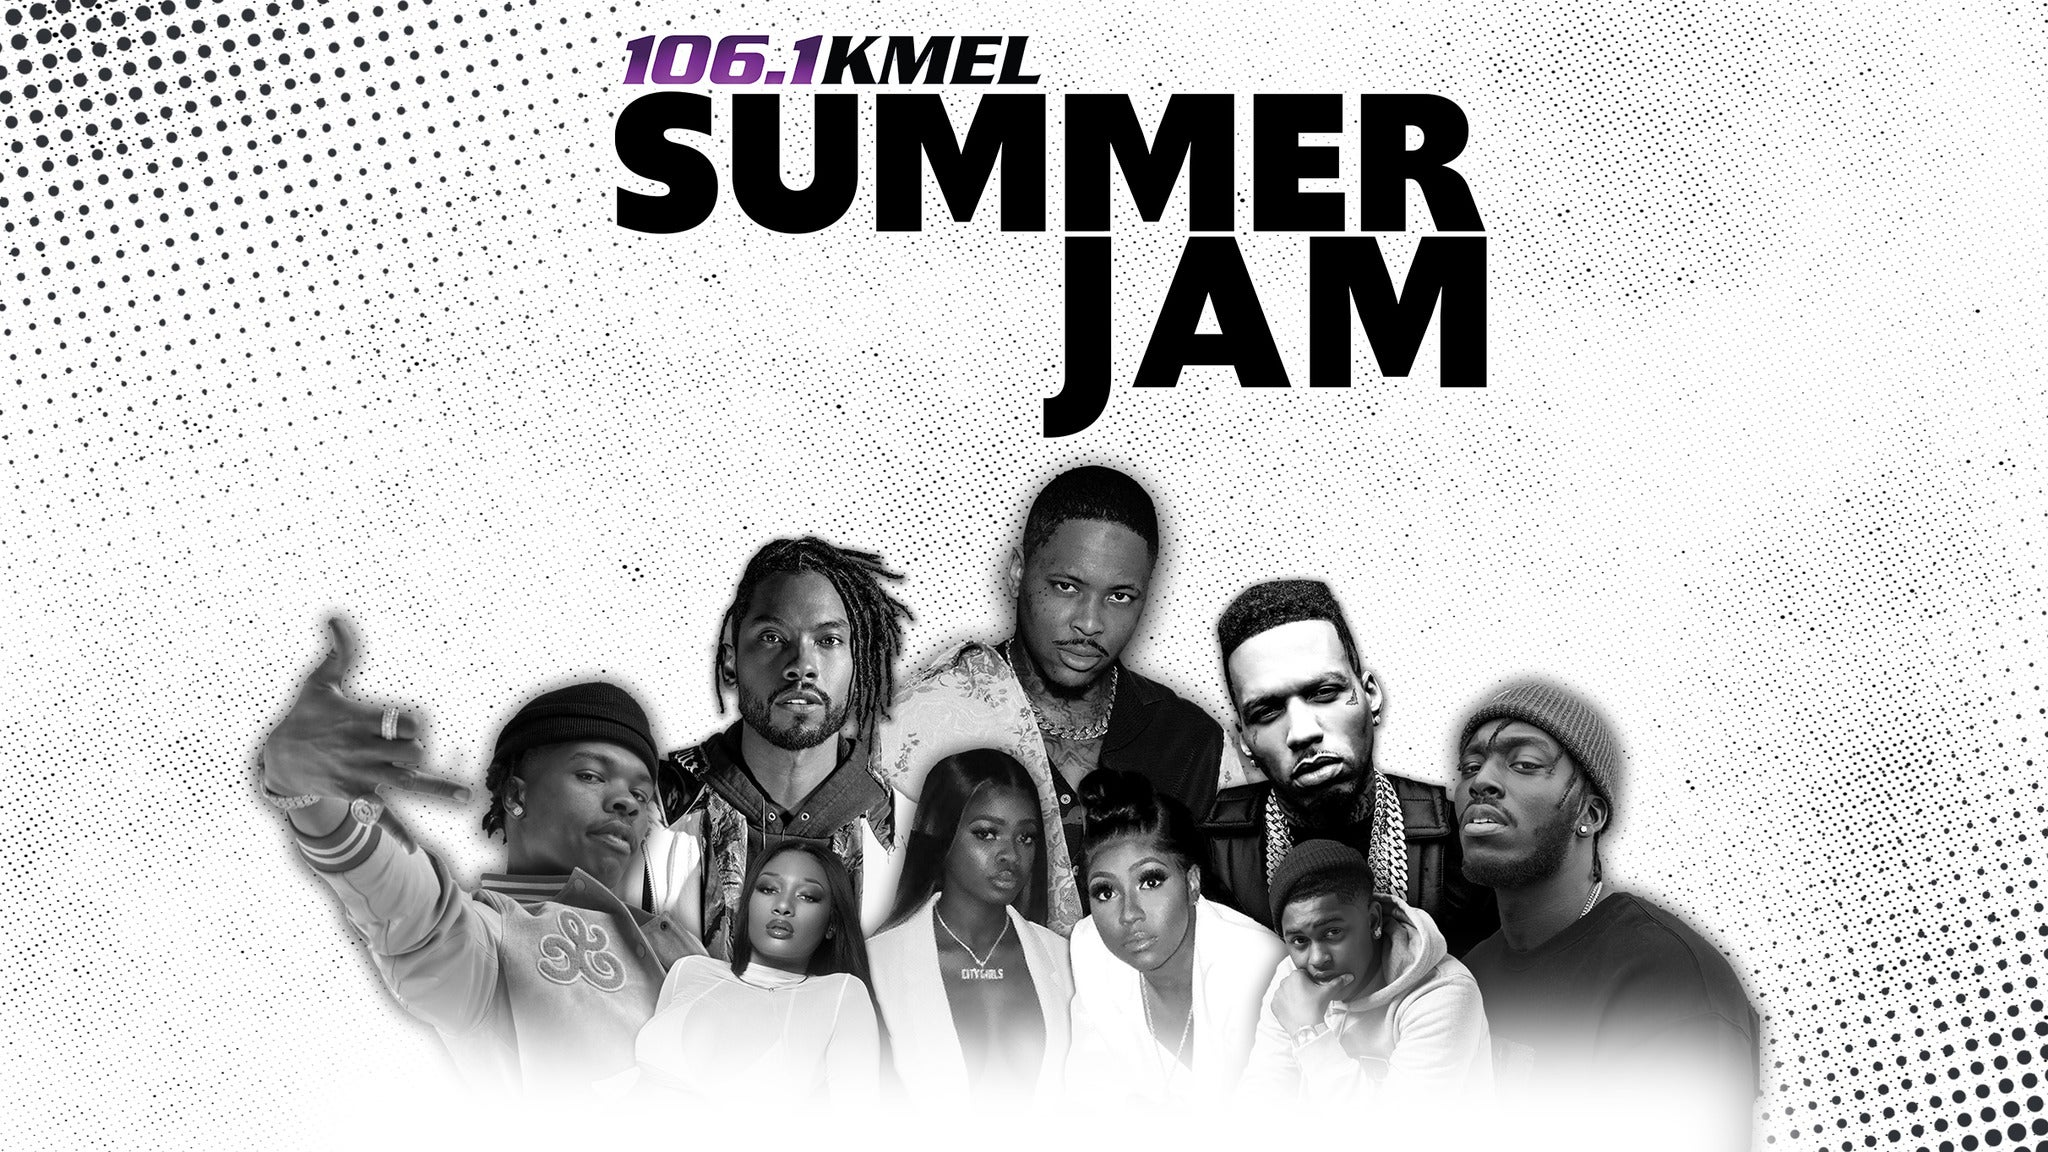 106.1 KMEL Summer Jam 2019 at Oracle Arena